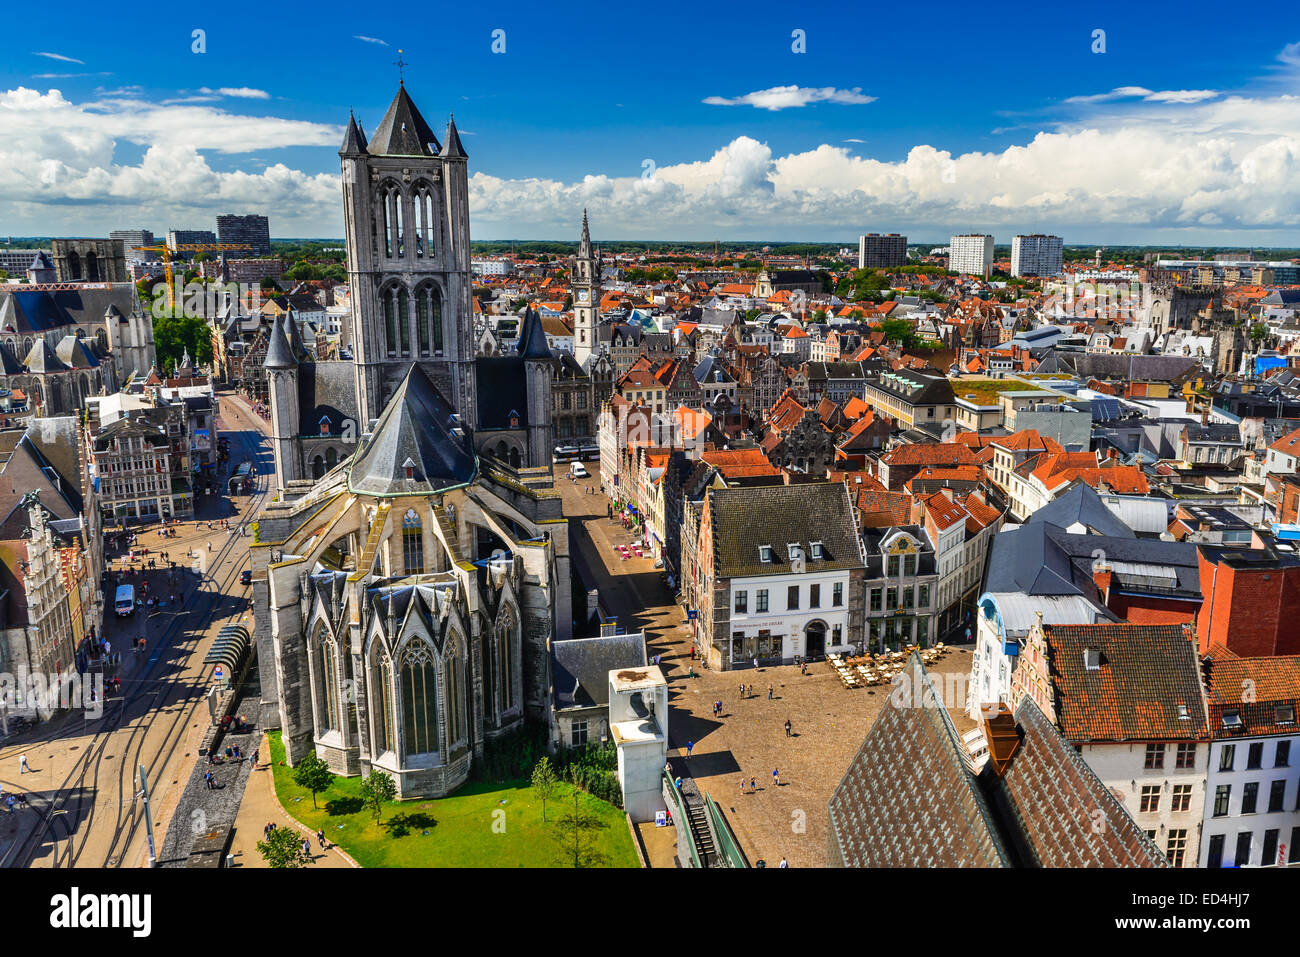 Skyline of Gent, Ghent in West Flanders, Belgium, seen from Belfort tower with St. Nicholas Church. - Stock Image